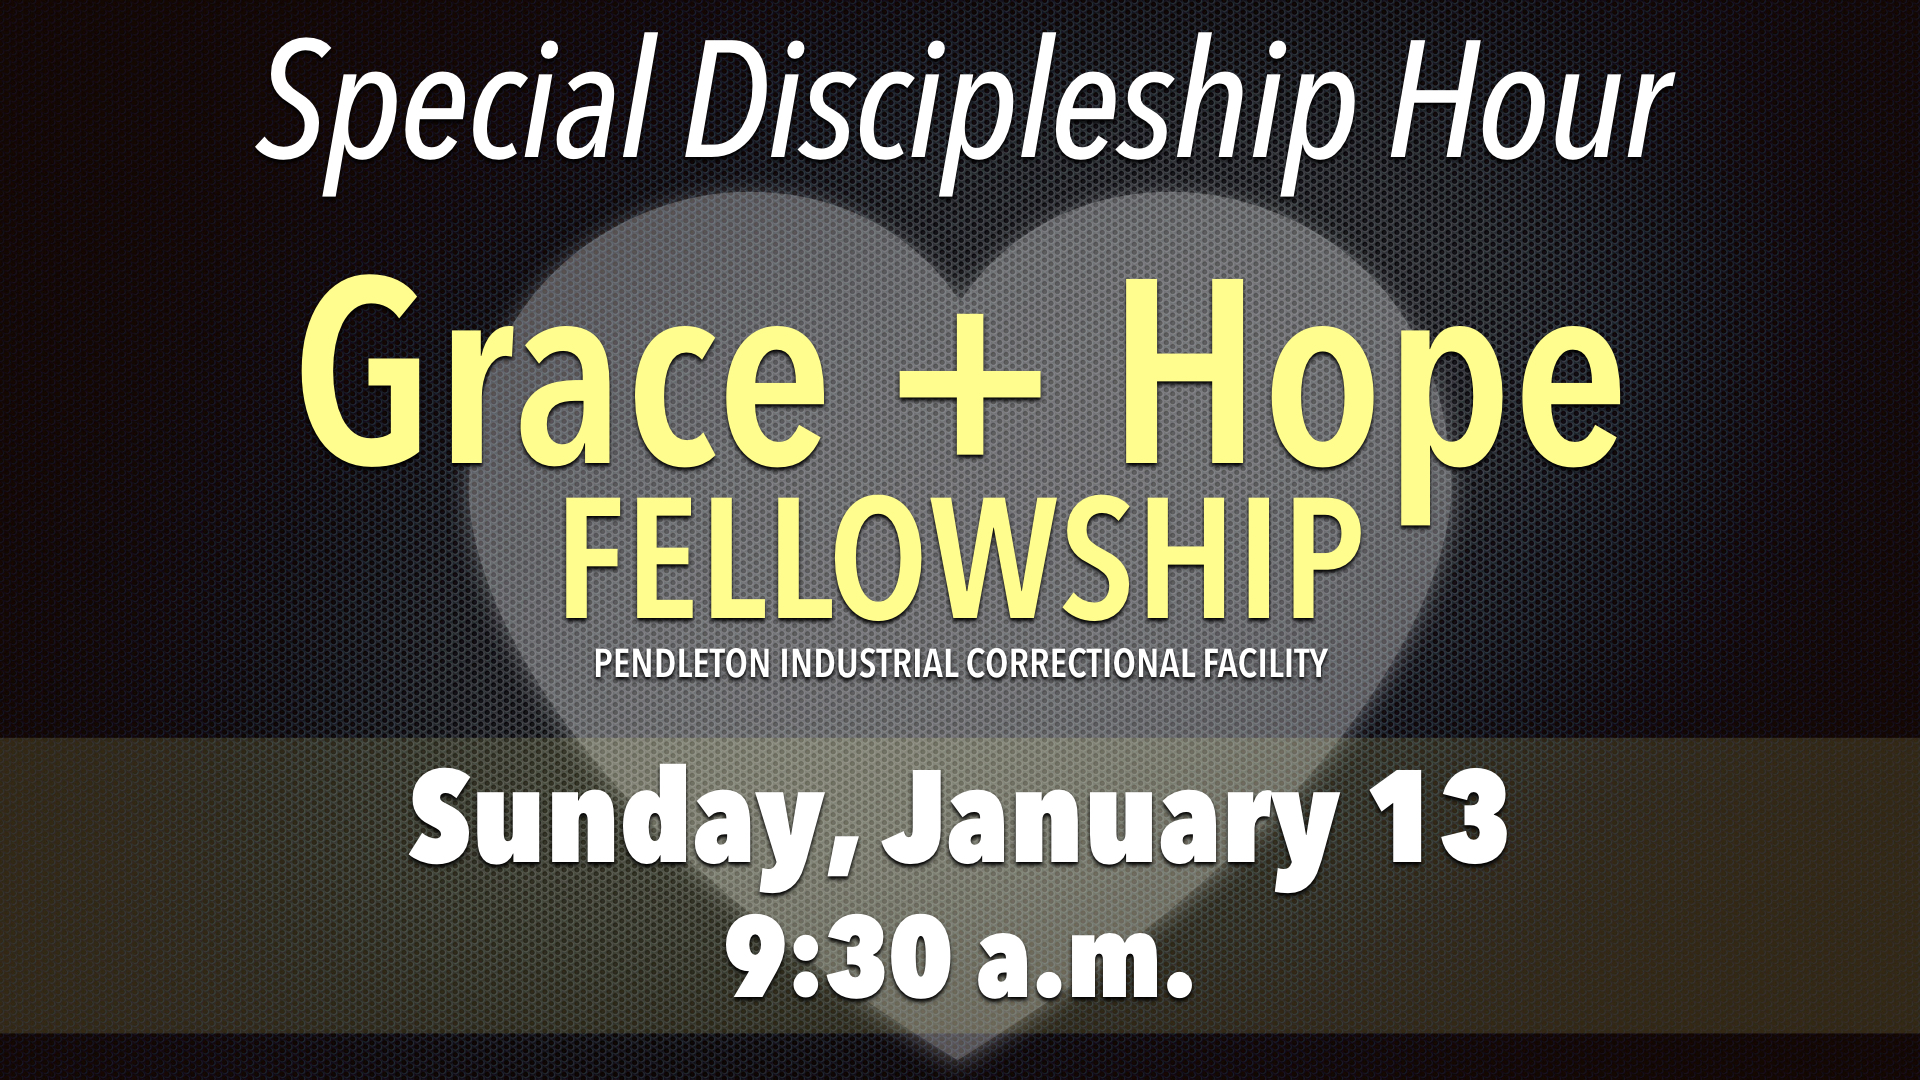 Special Discipleship Hour on Grace and Hope Fellowship